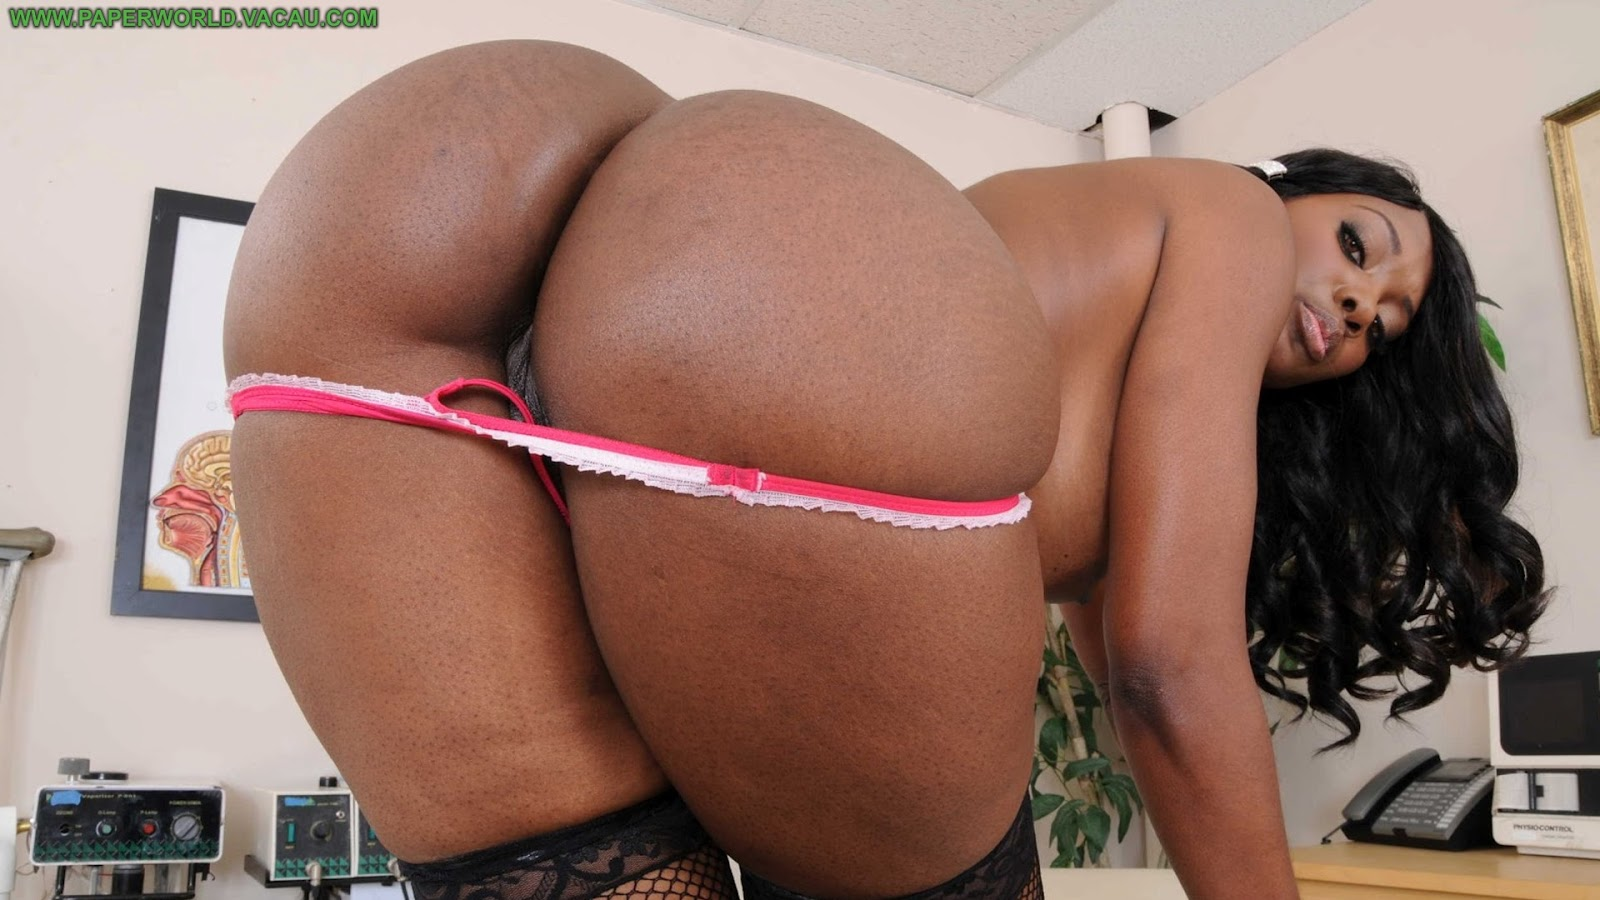 Seems big black sexy ass share